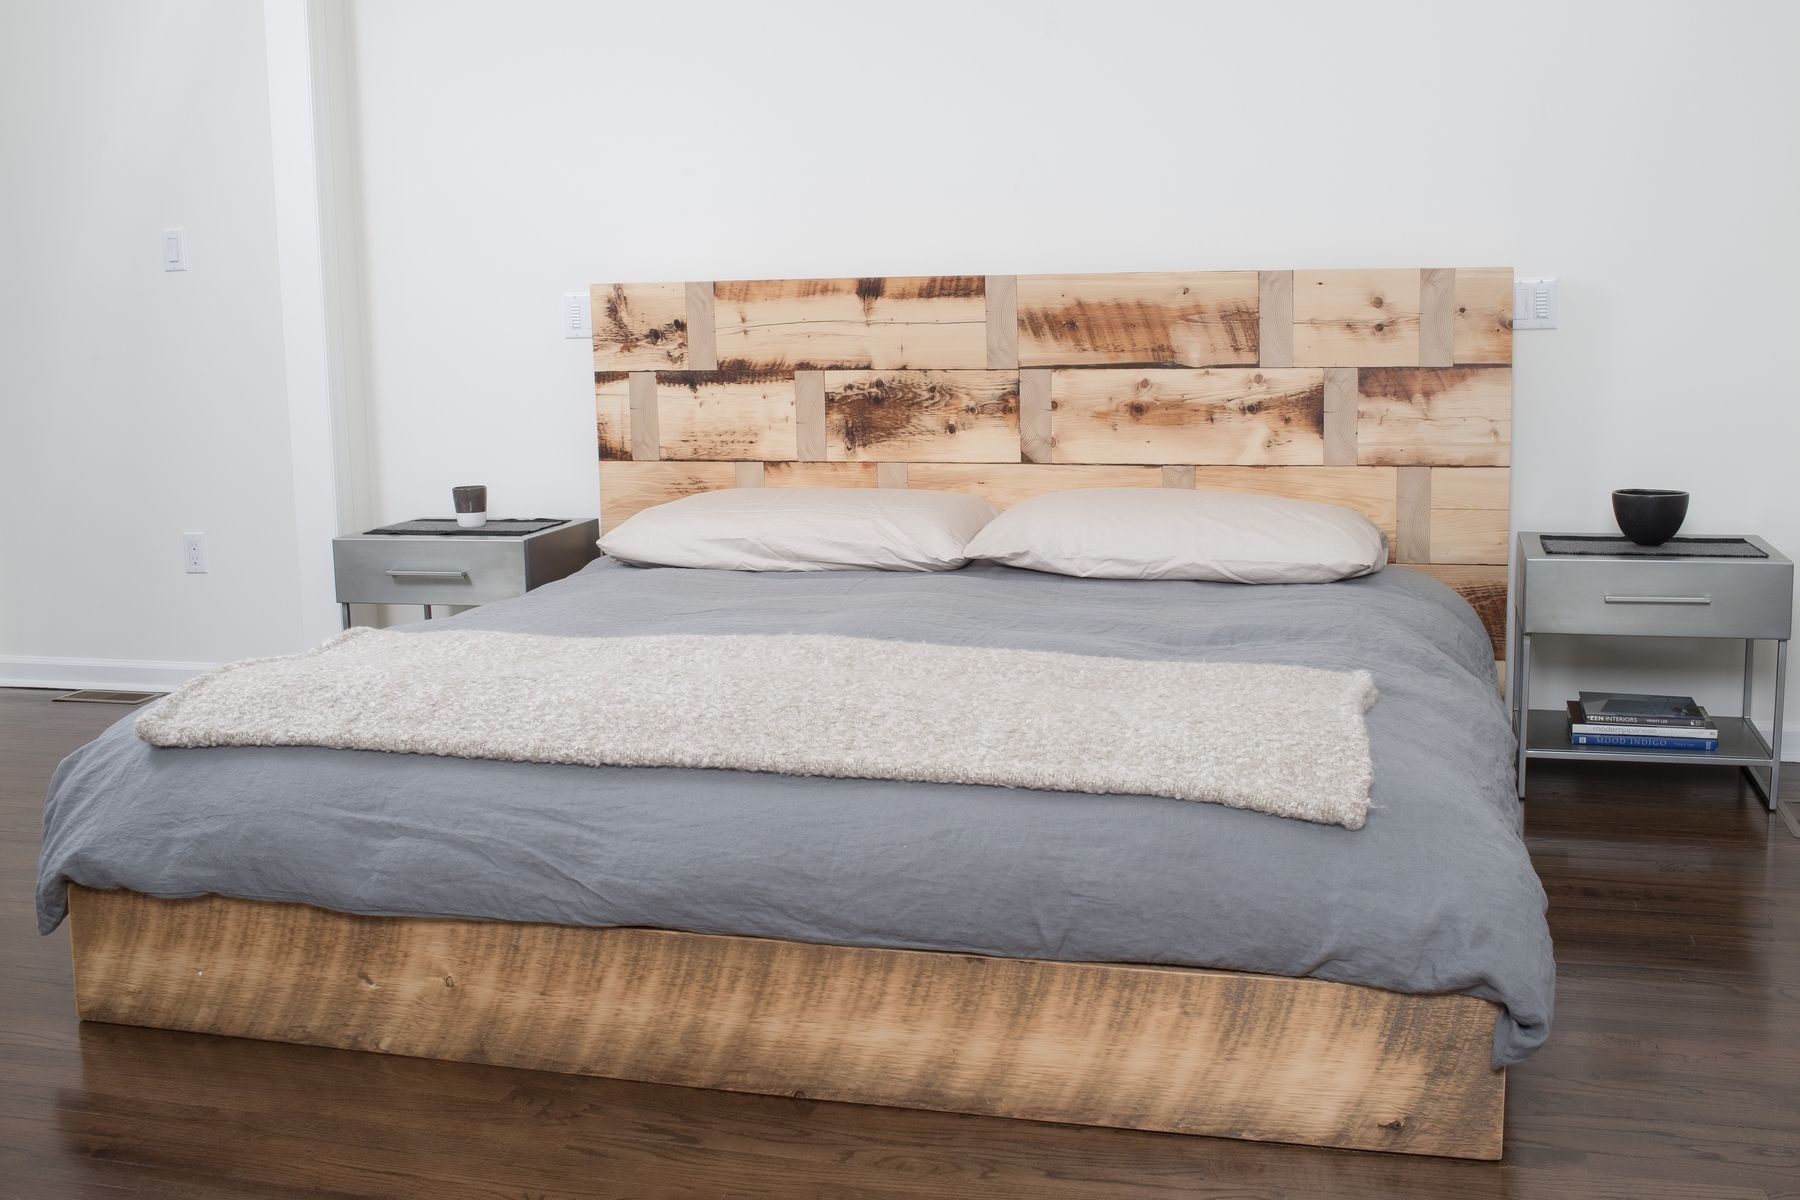 Hand Made Reclaimed Wood Platform Bed By RHG Architecture